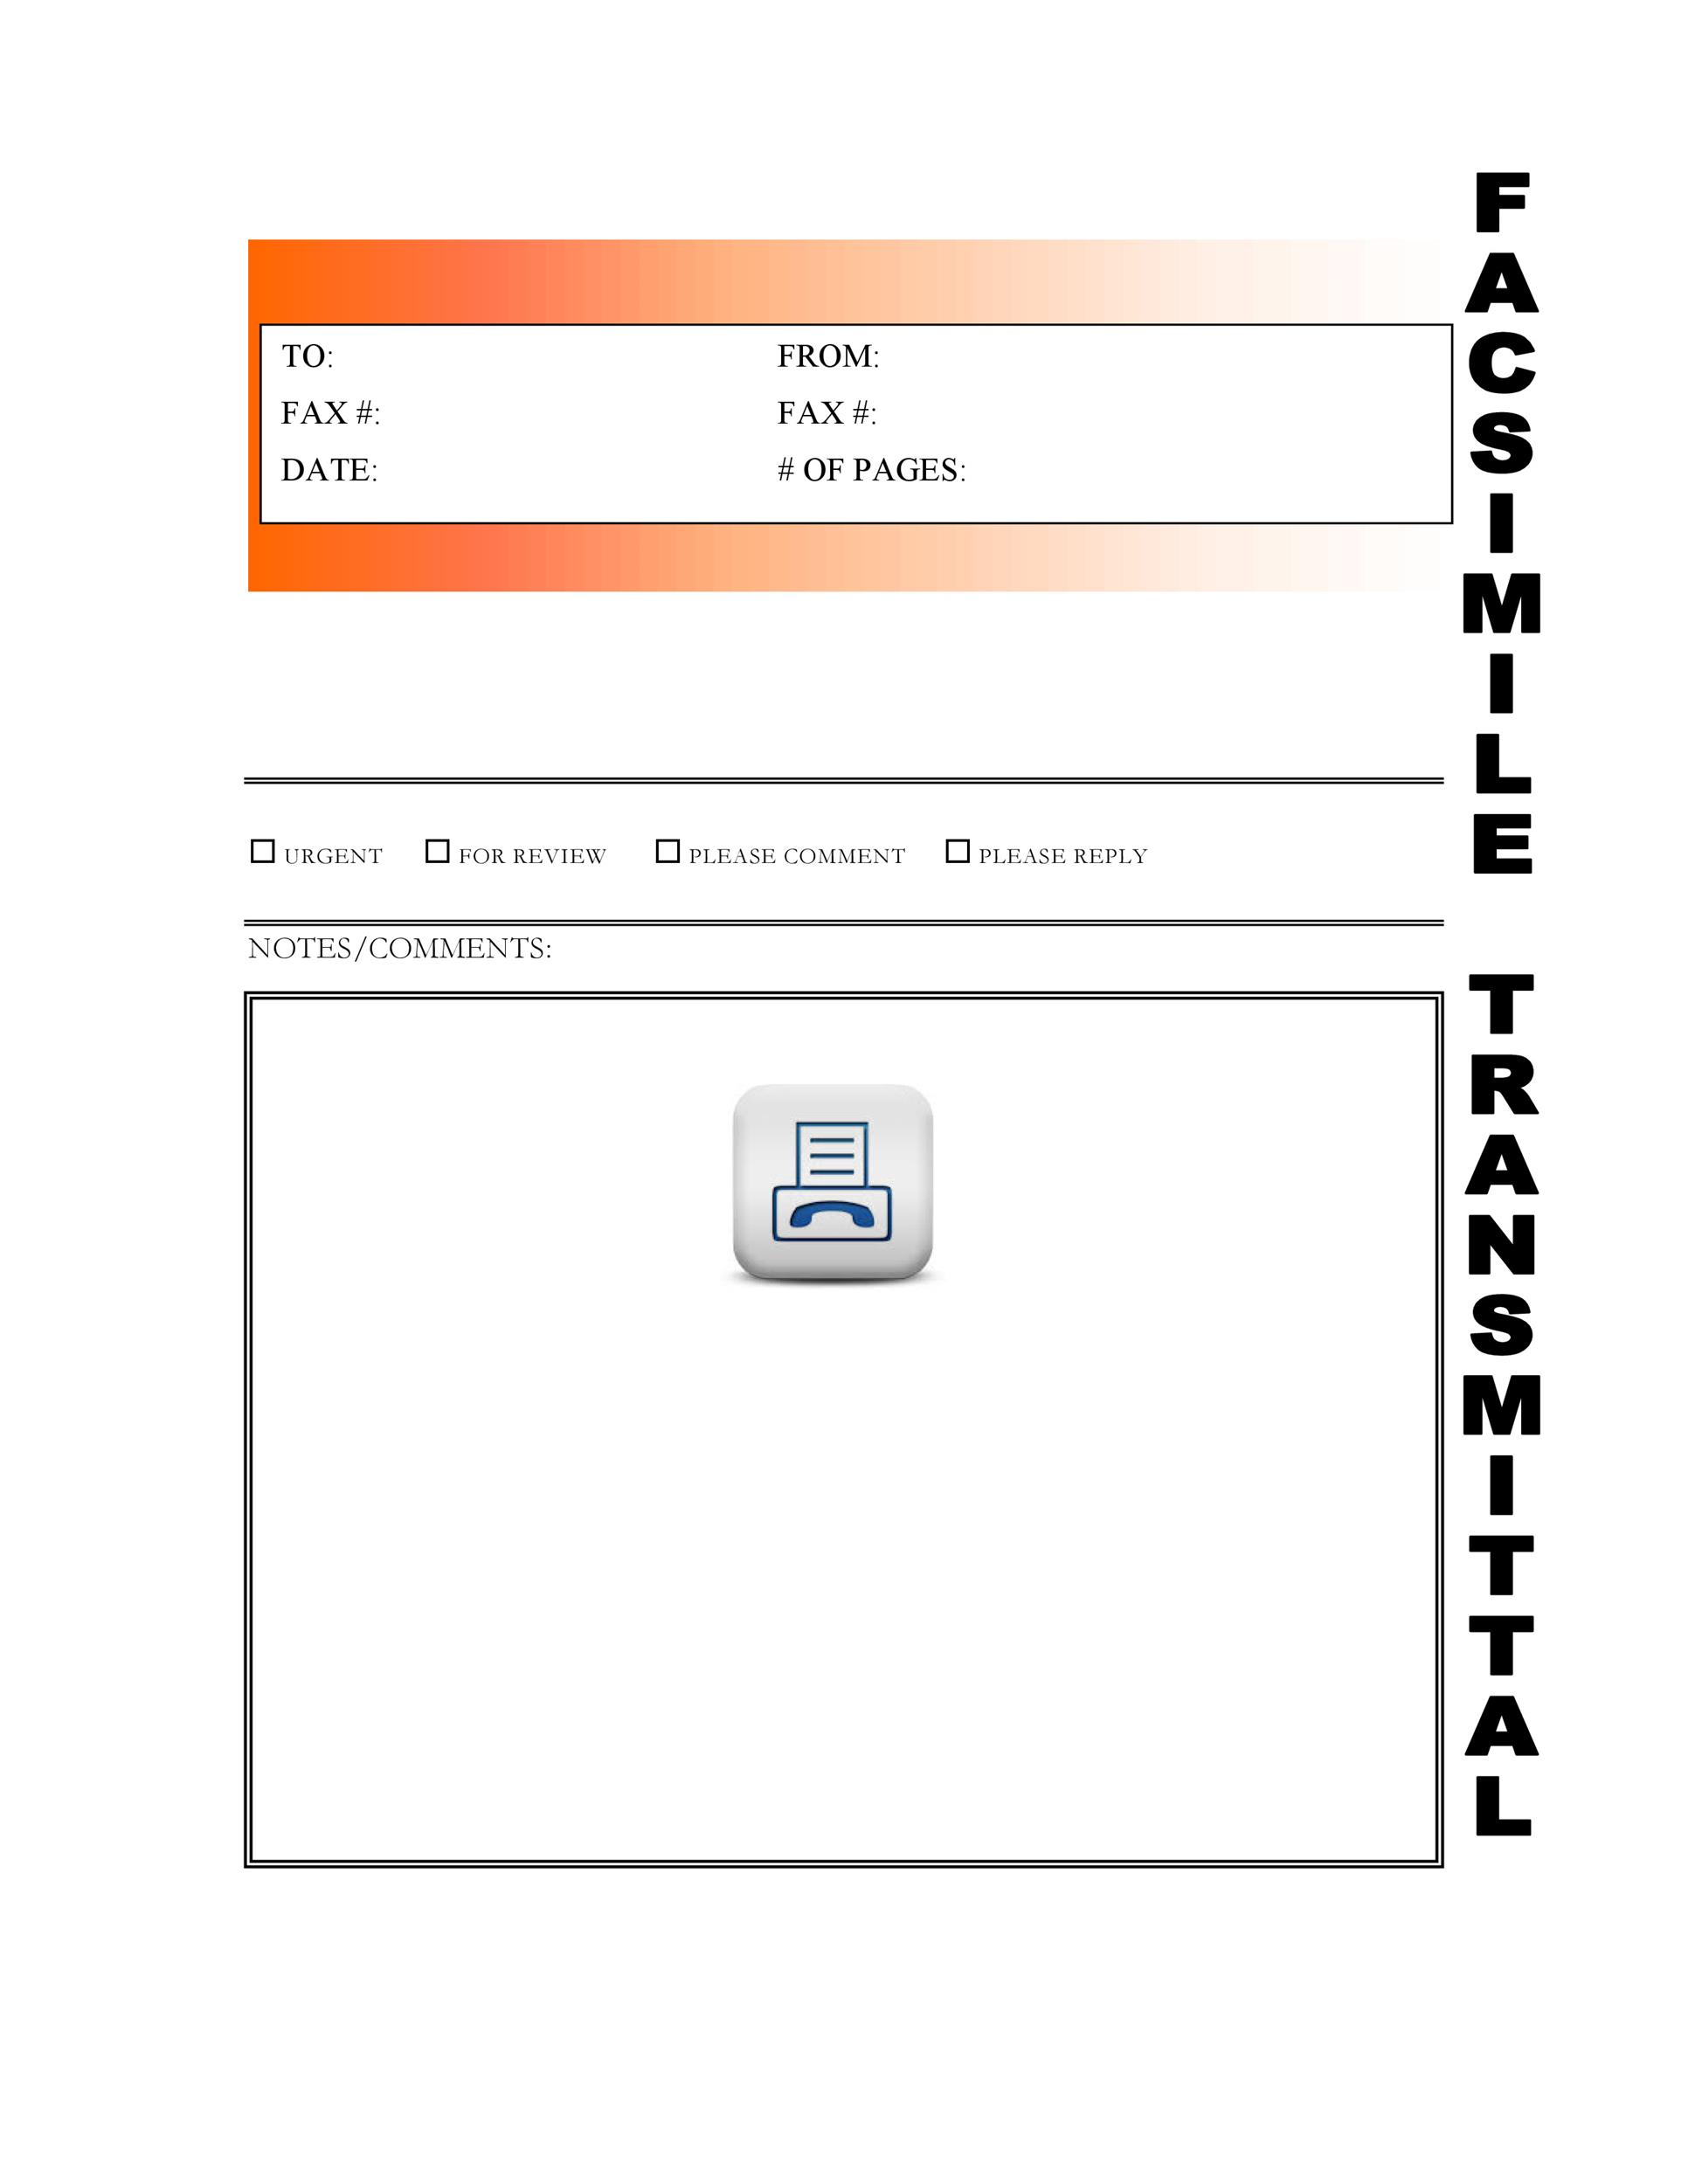 printable fax cover sheet template 33